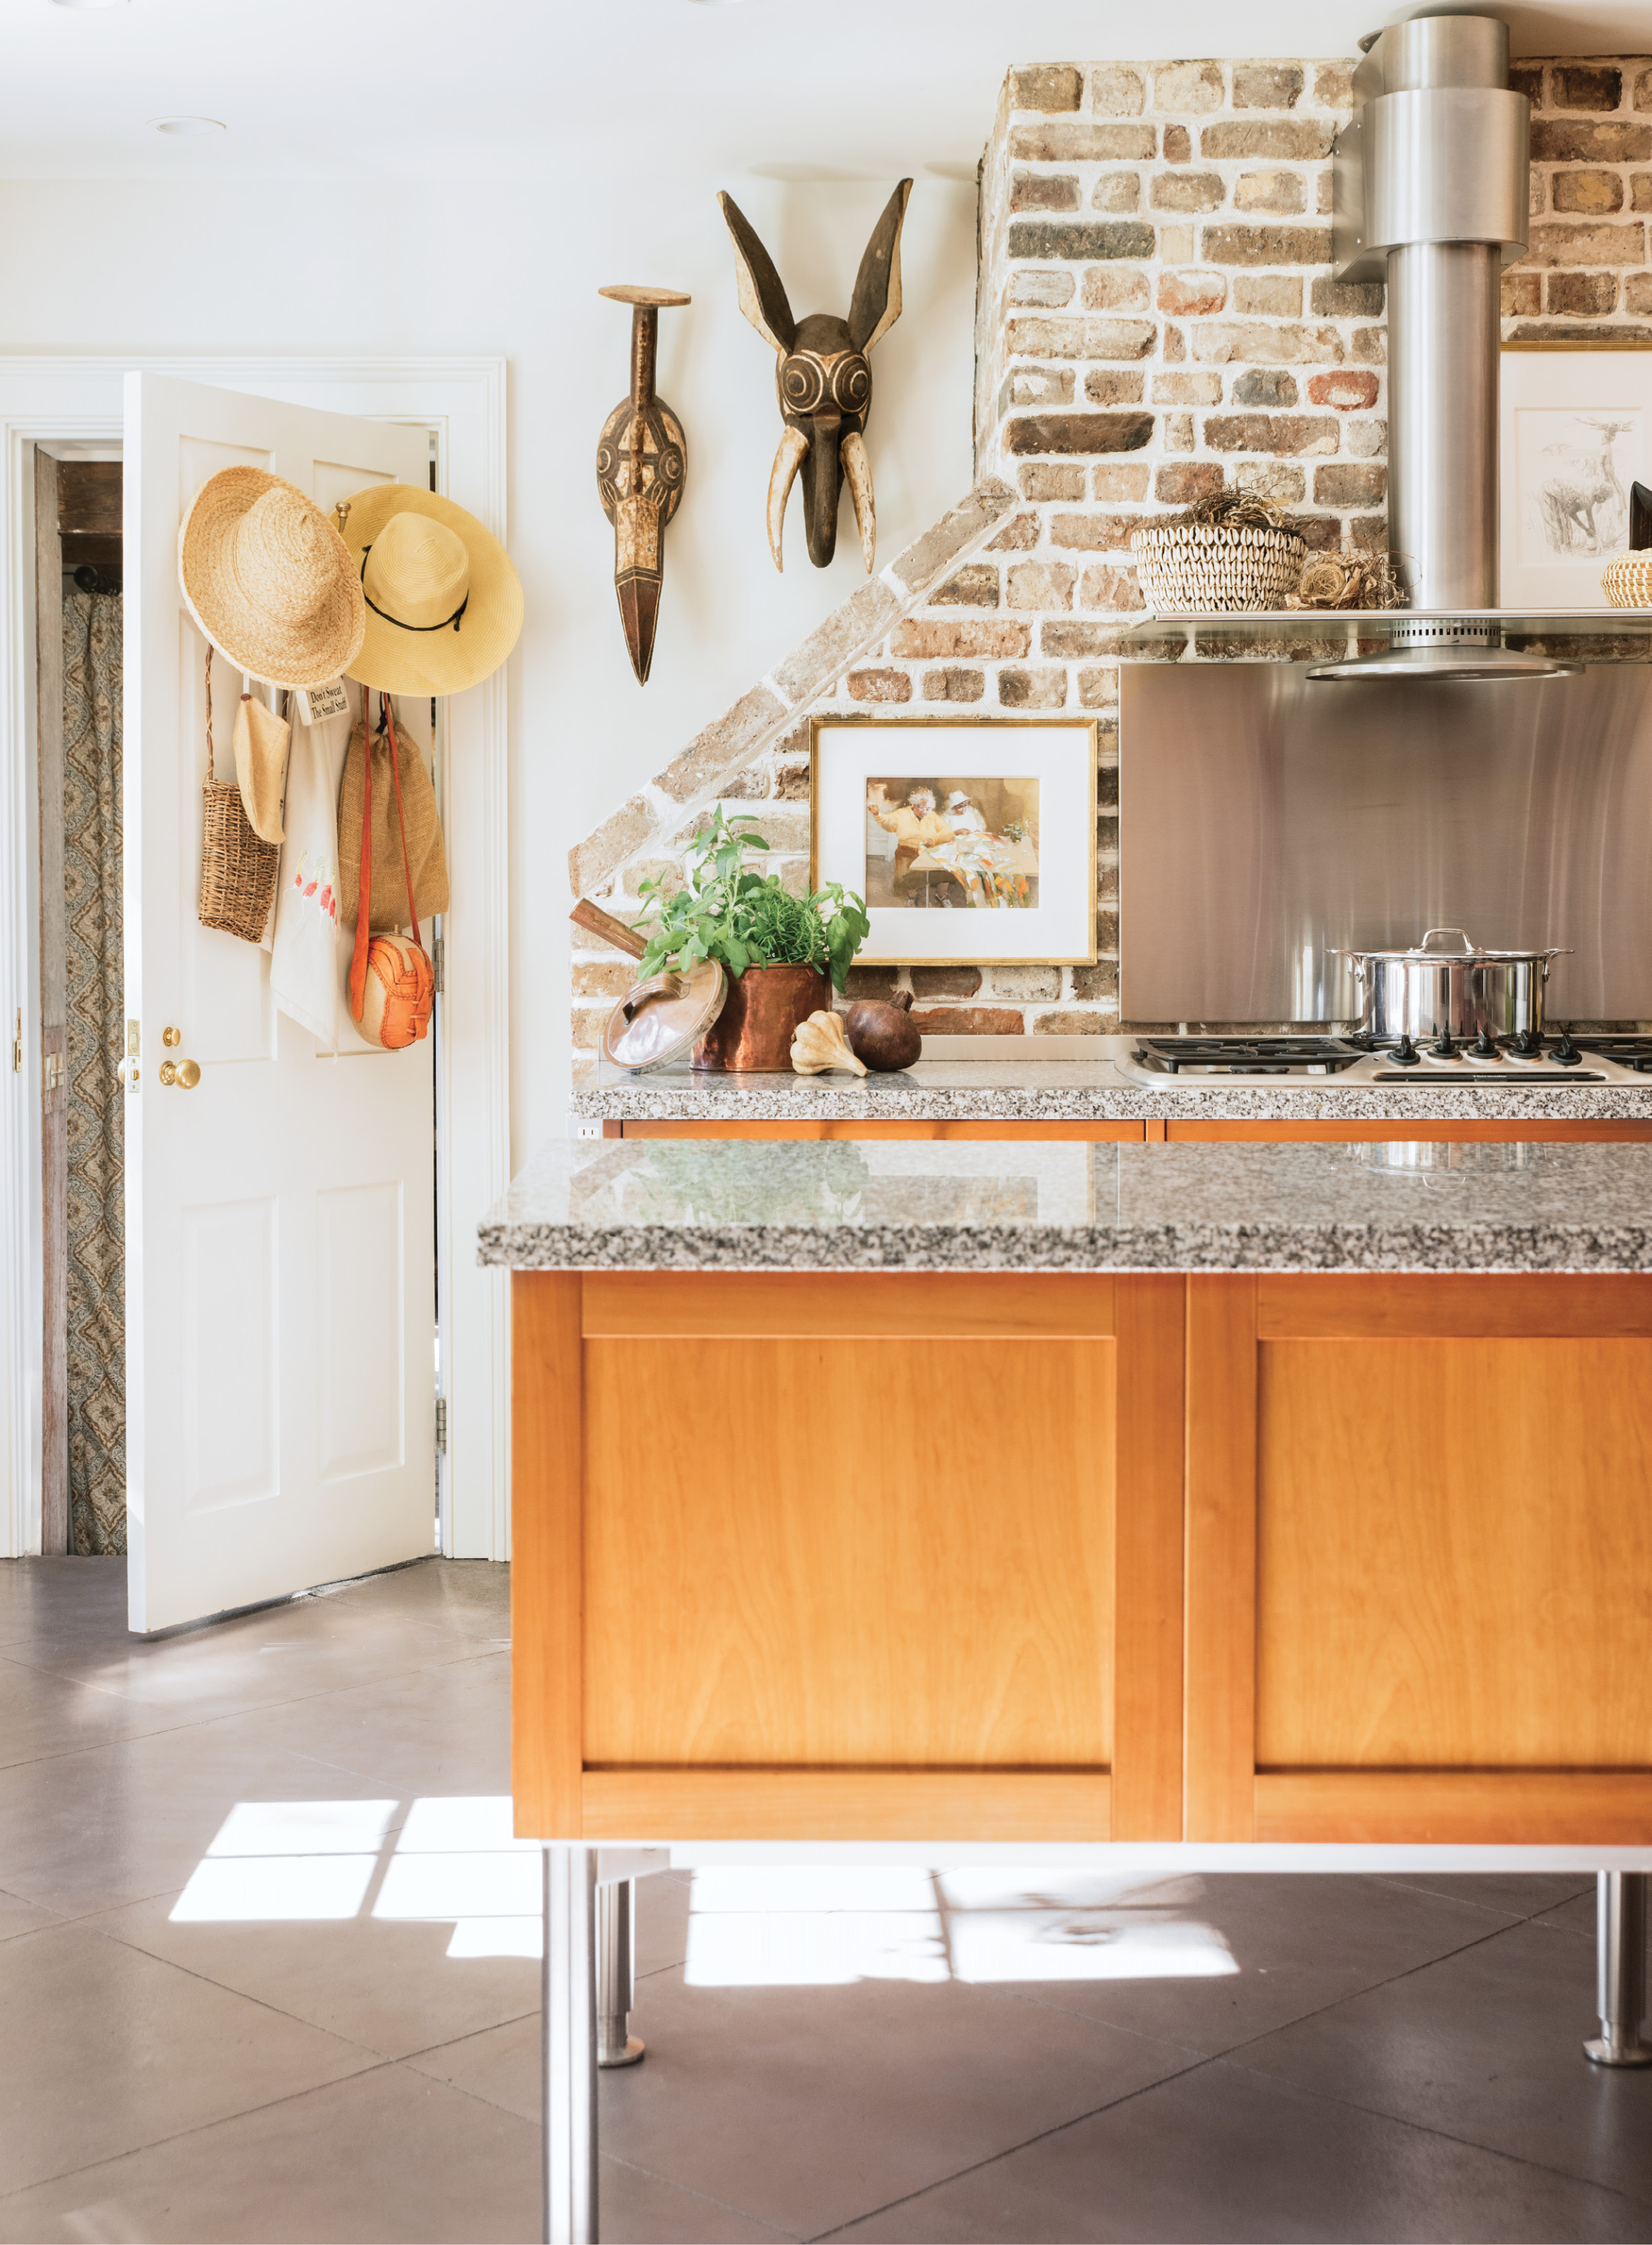 African masks and a watercolor painting by local artist Mary Whyte add warmth and personal meaning to the utilitarian, Bauhaus-style kitchen.